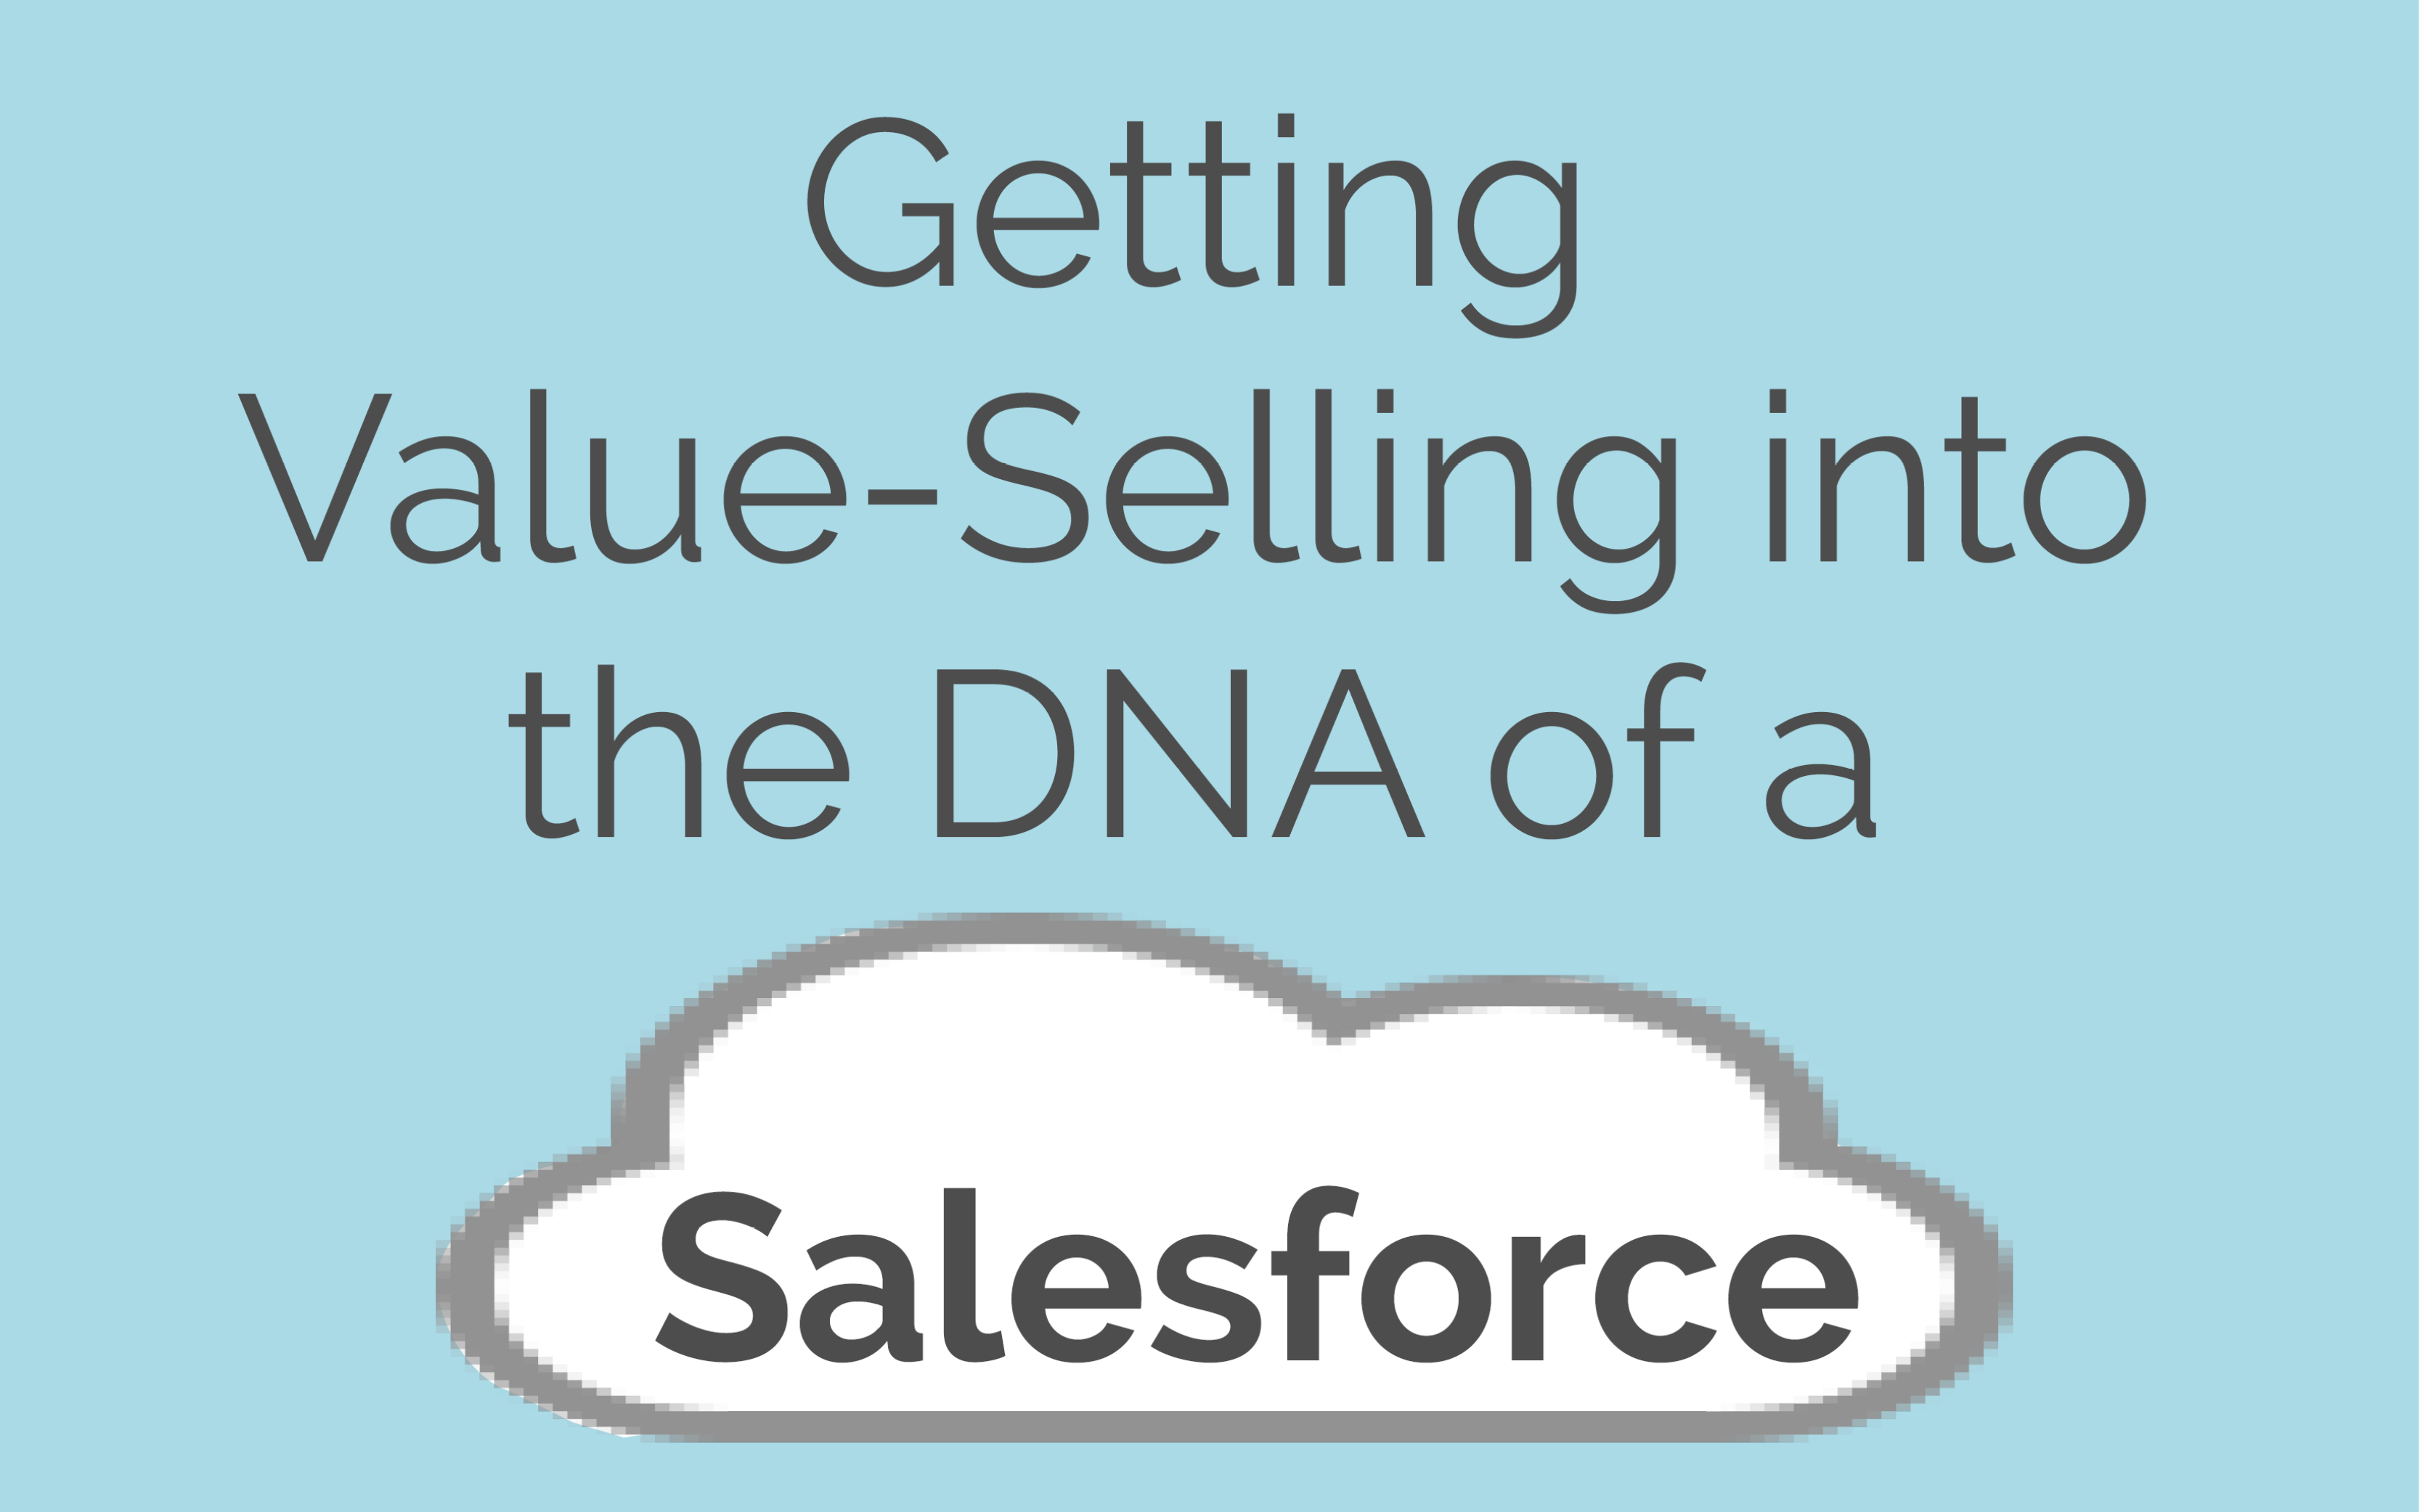 Getting Value-Selling Into The DNA Of A Salesforce